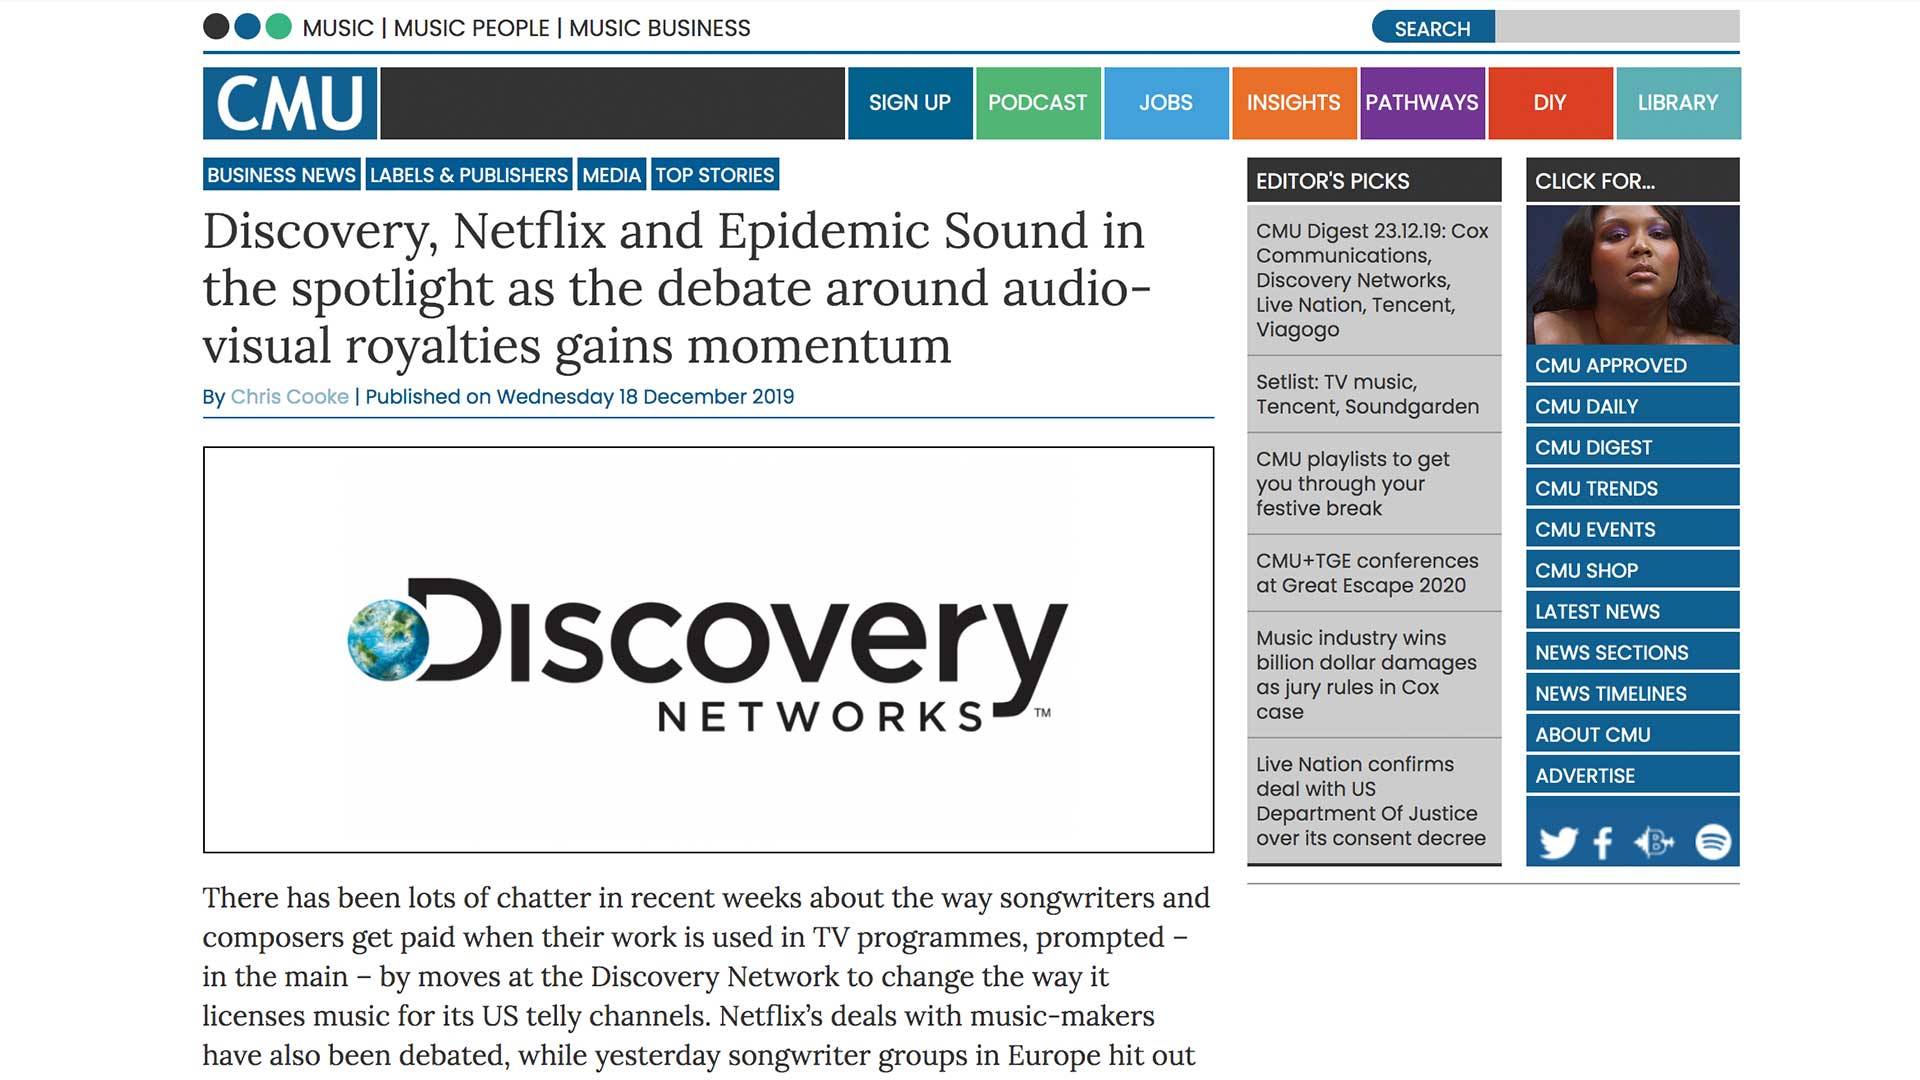 Fairness Rocks News Discovery, Netflix and Epidemic Sound in the spotlight as the debate around audio-visual royalties gains momentum